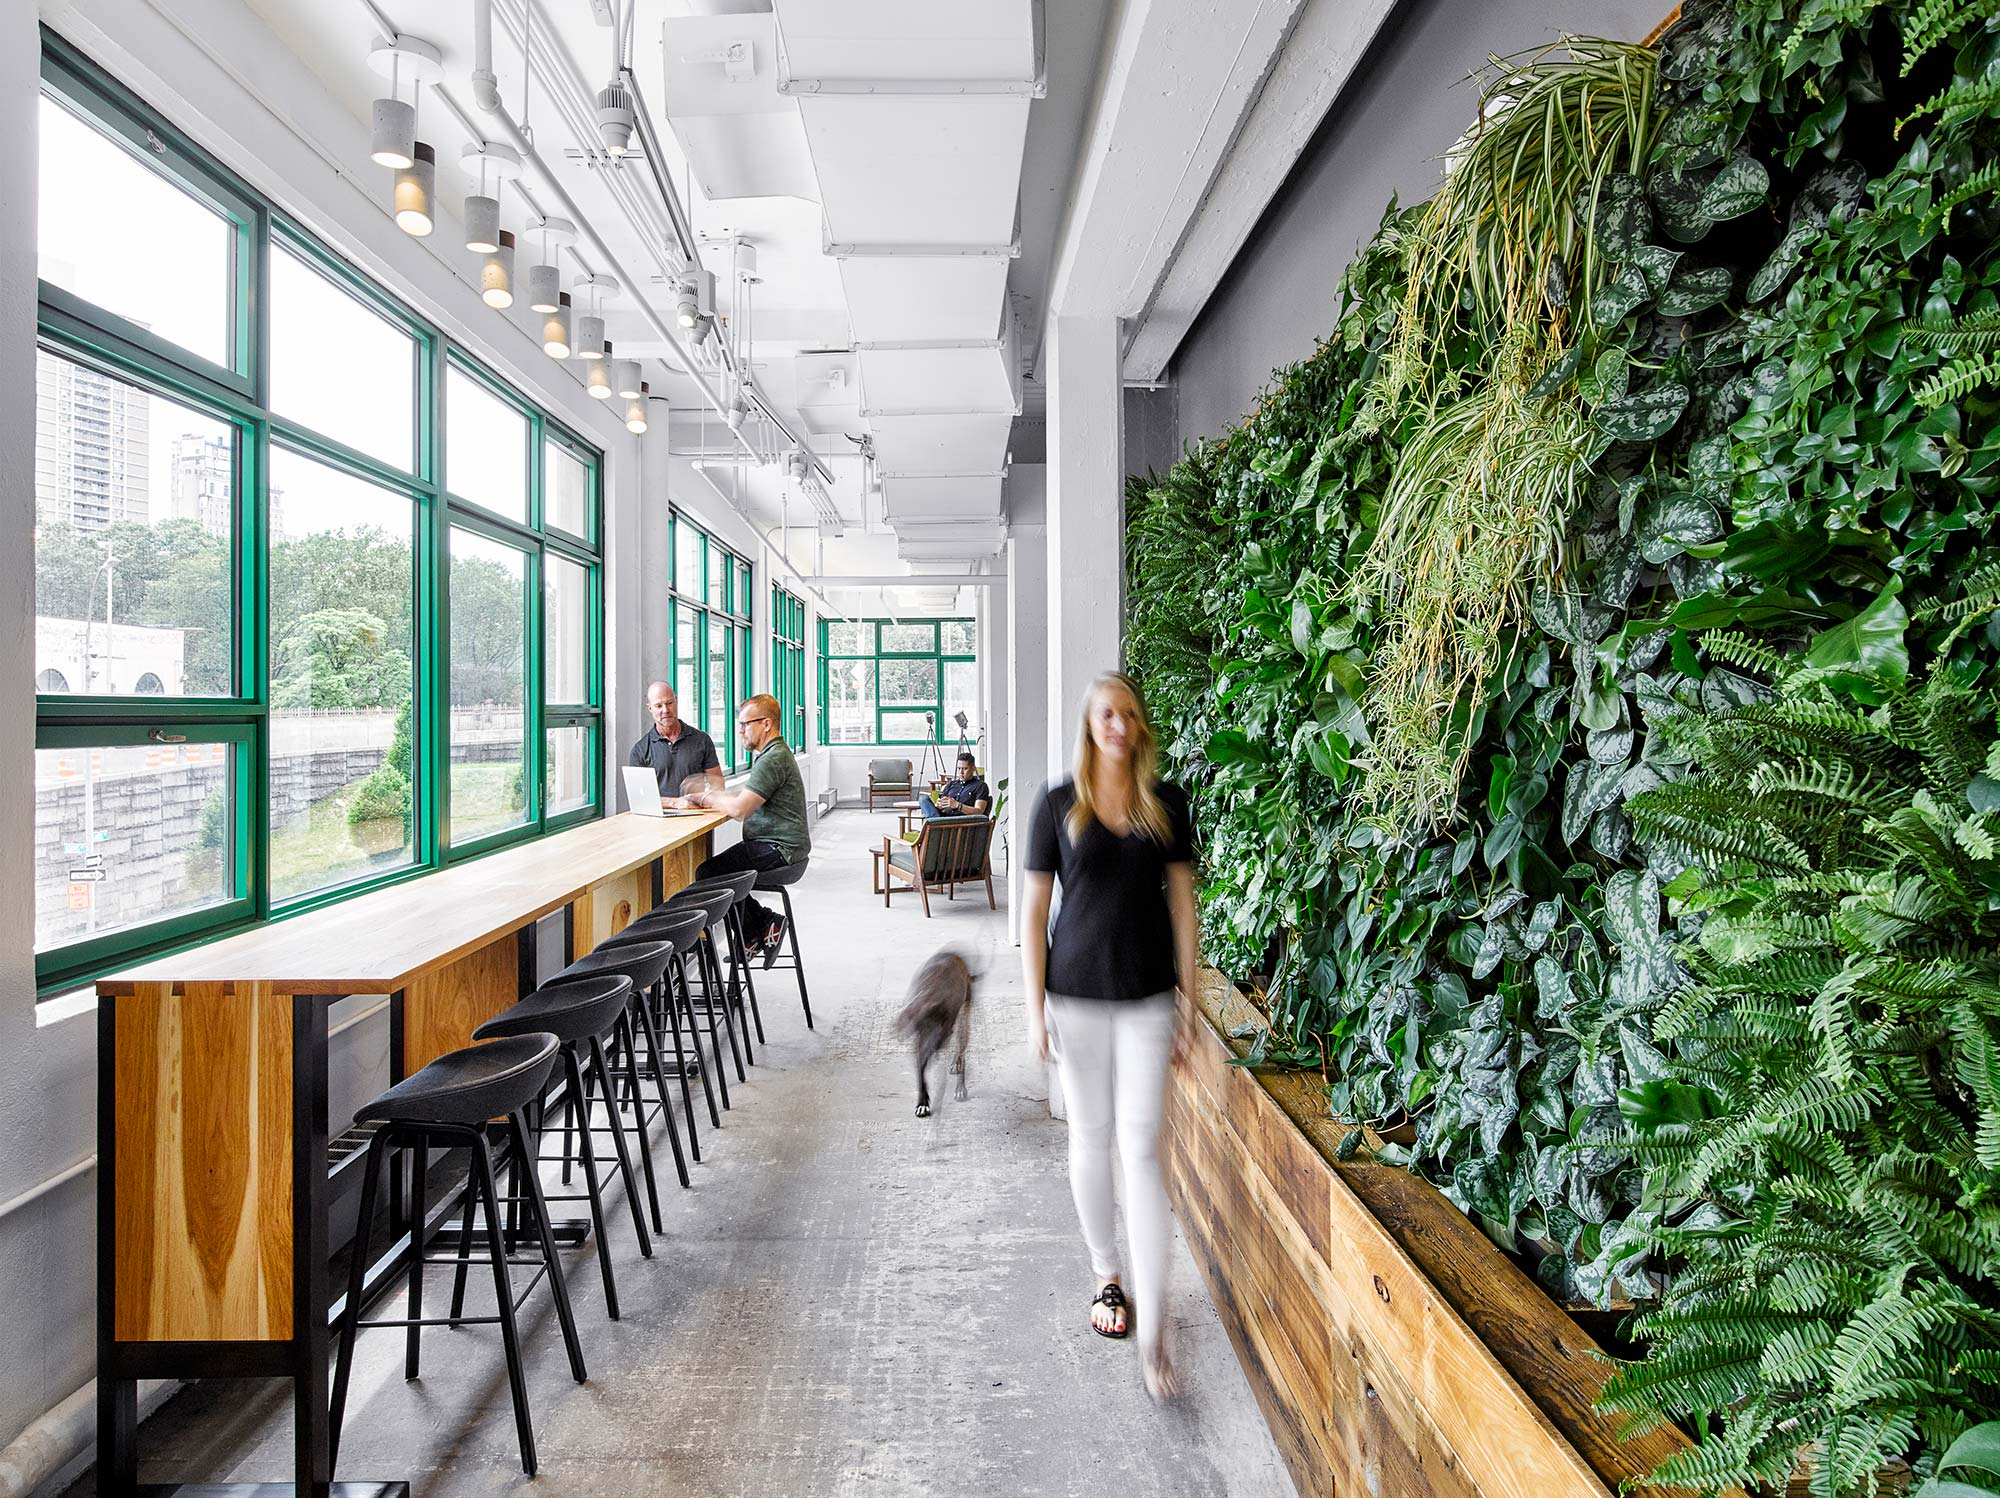 The Gensler-designed Etsy headquarters in Brooklyn, which achieved the Living Building Challenge (LBC) Petal Certification, incorporates biophilic design elements throughout the space and fosters a connection to the outdoors.